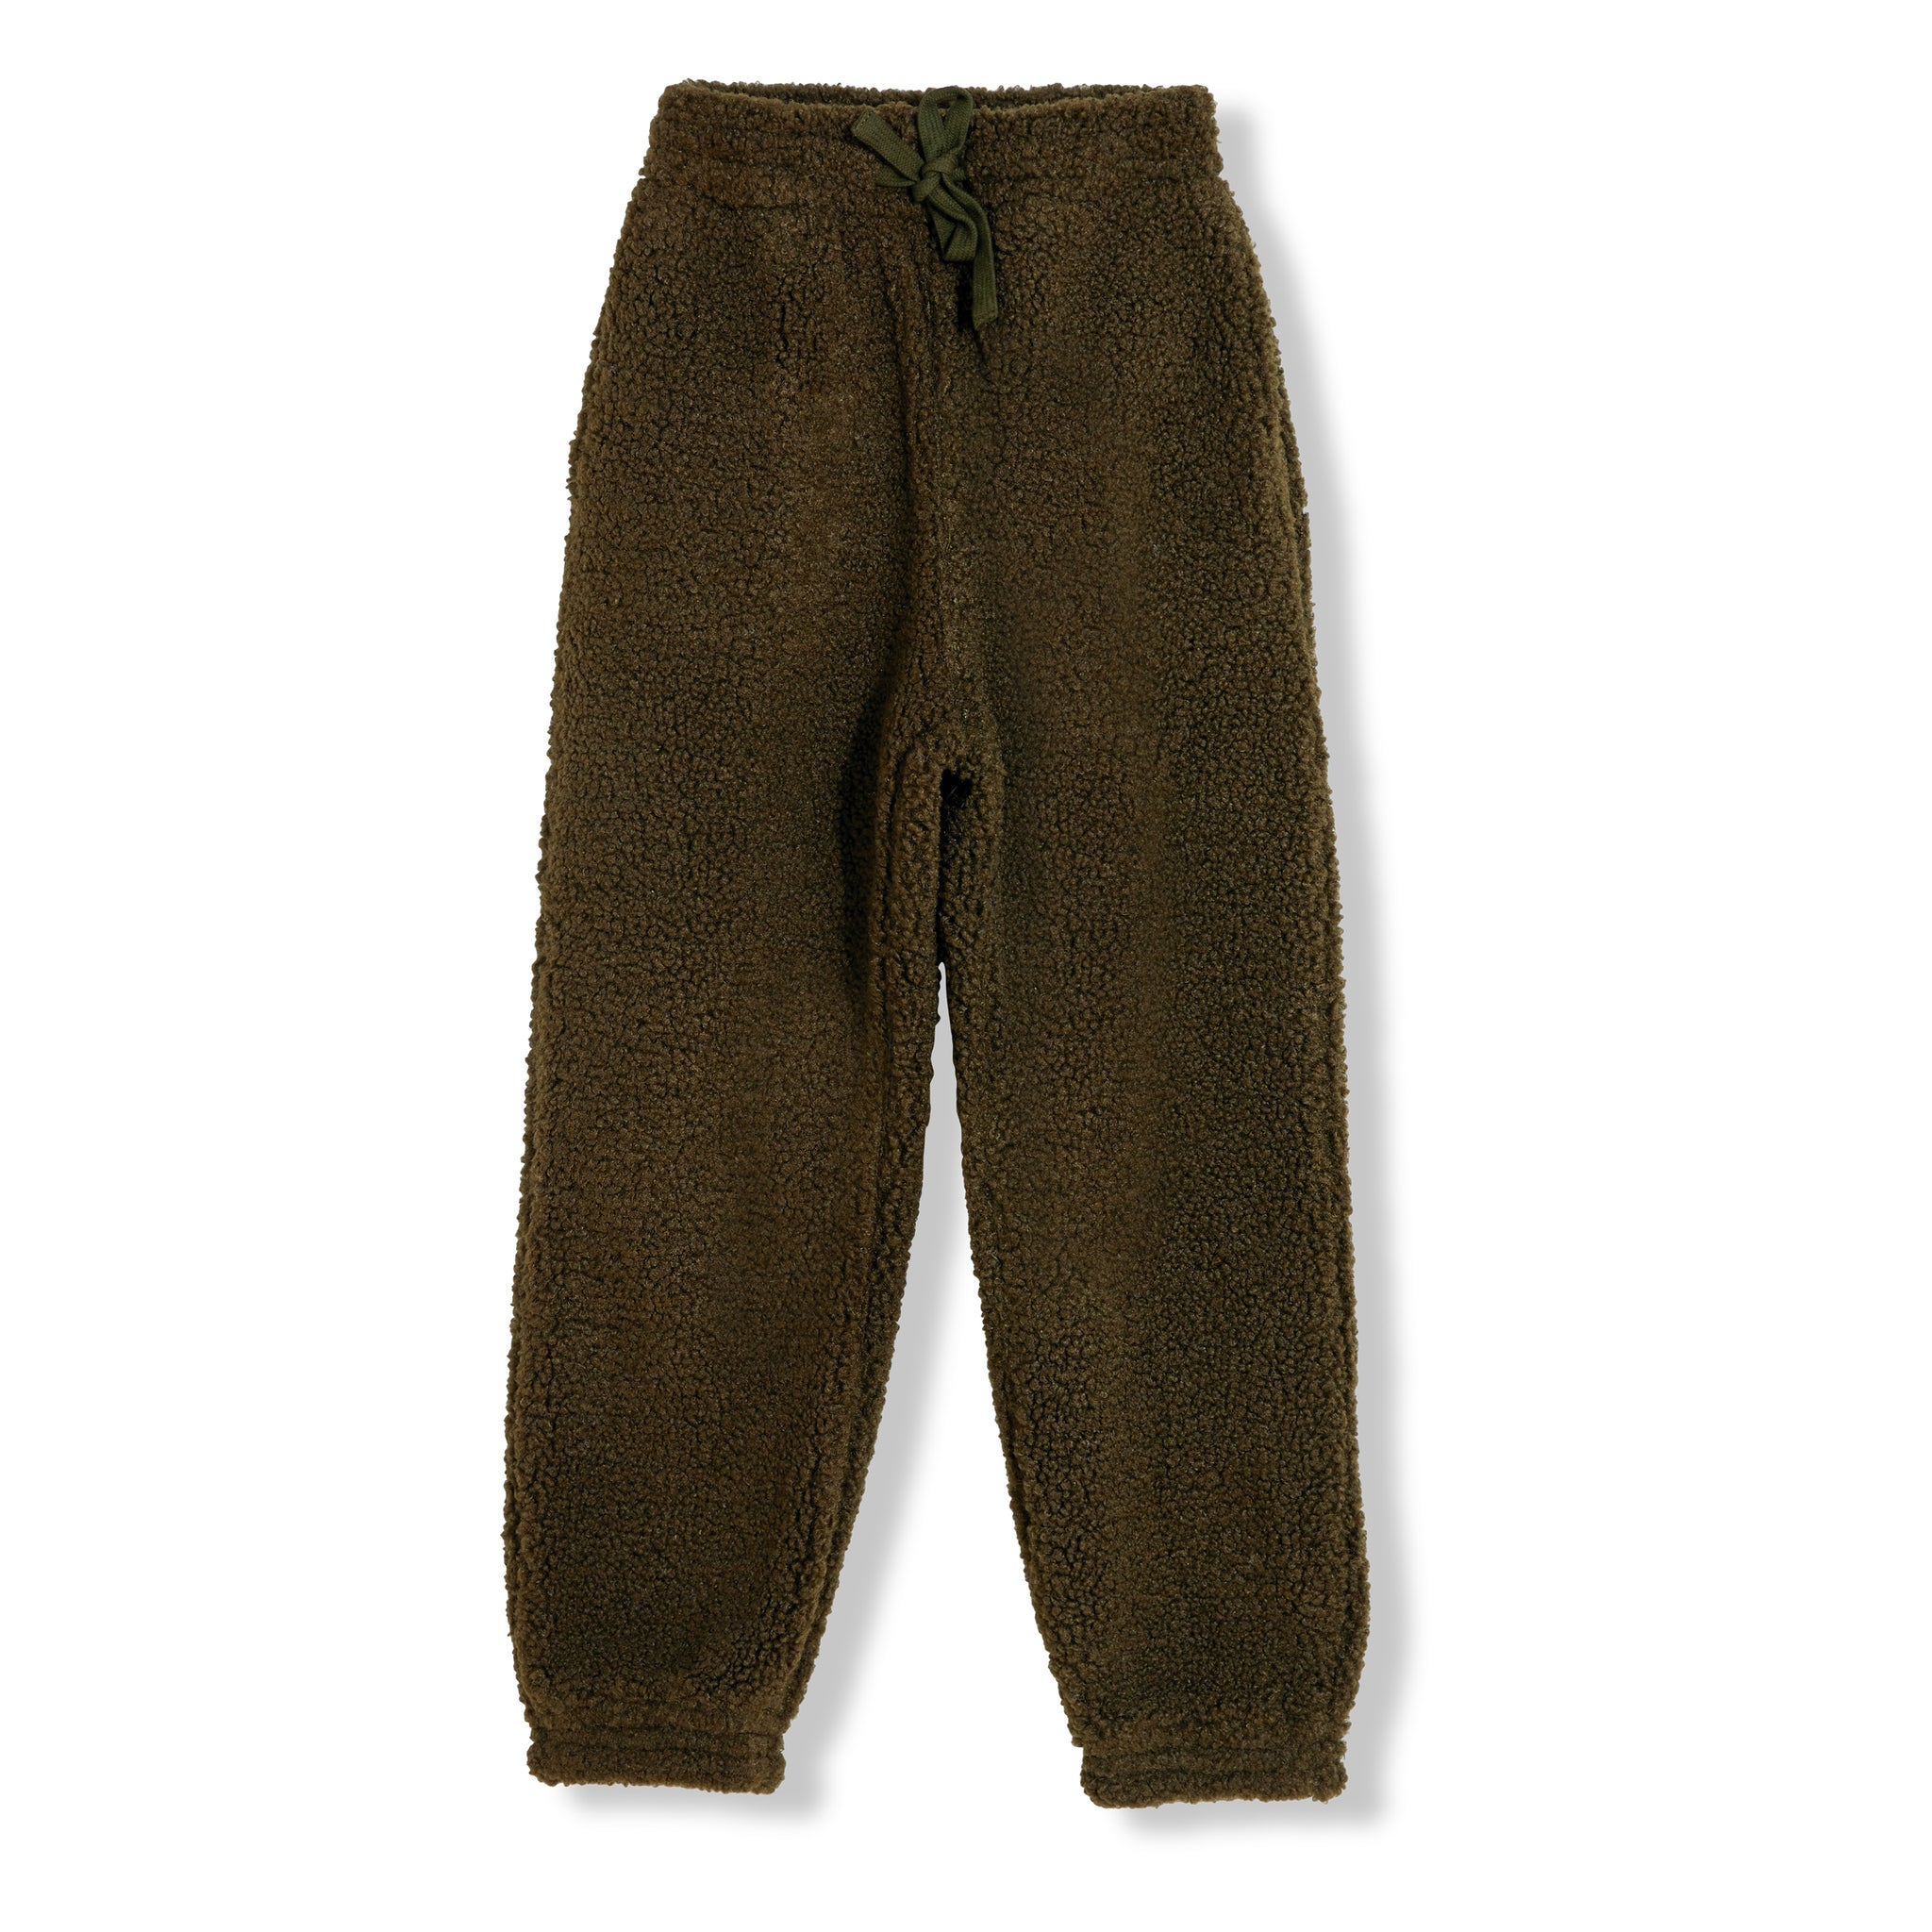 CONNIE Khaki - Jogg Pant 1